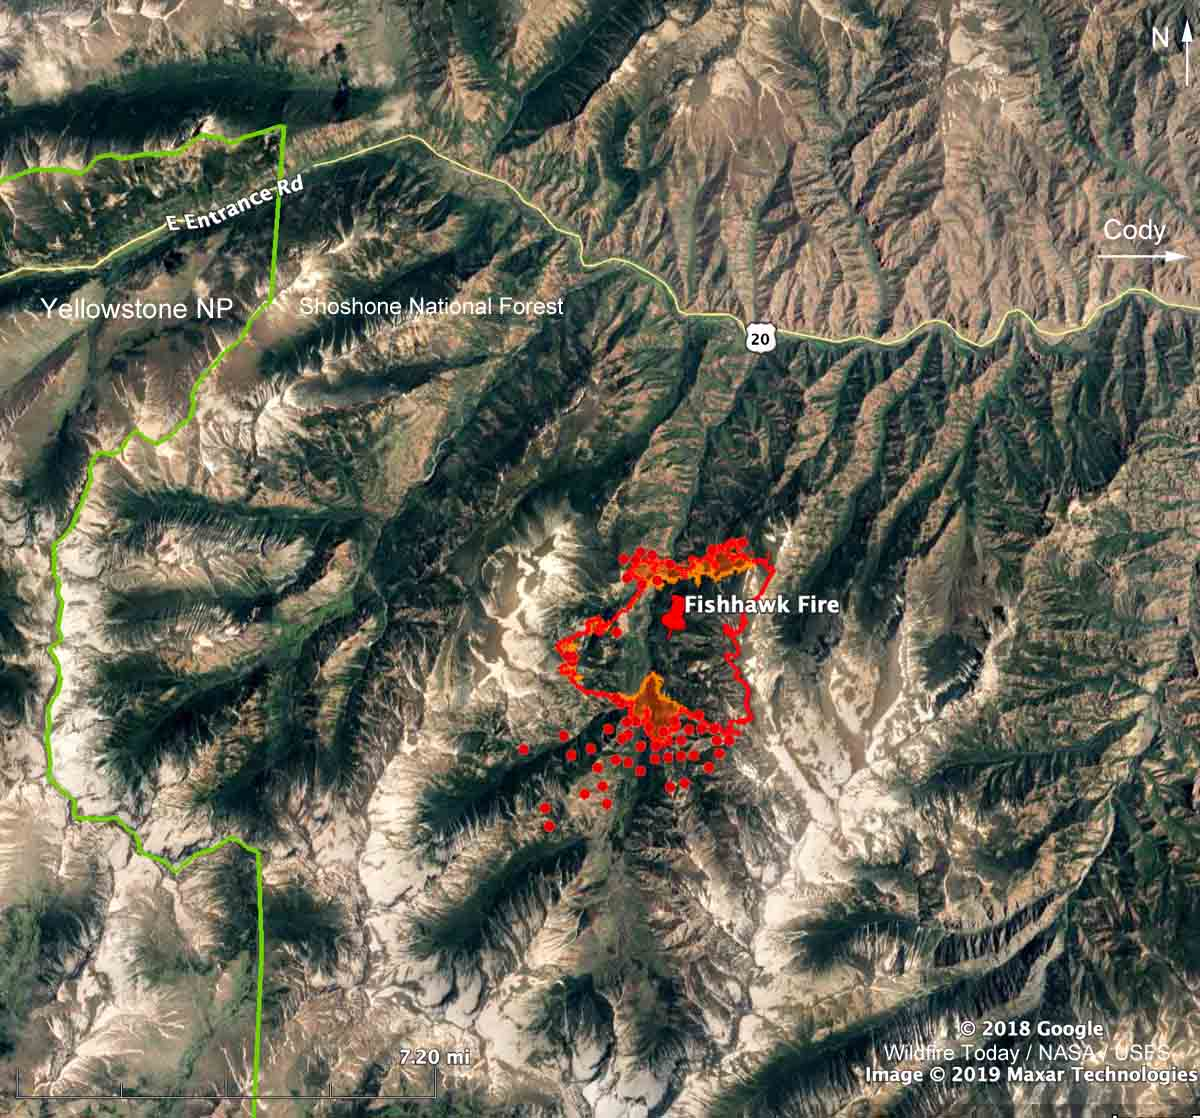 Fishhawk Fire grows to over 4,500 acres west of Cody ... on physical map of yellowstone, topographical map of yellowstone, street map of yellowstone, topo map of yellowstone, elevation map of yellowstone, aerial map of yellowstone, topography map of yellowstone, vegetation map of yellowstone, contour map of yellowstone, wildlife map of yellowstone, political map of yellowstone, landscape map of yellowstone, 3d map of yellowstone, distance map of yellowstone,